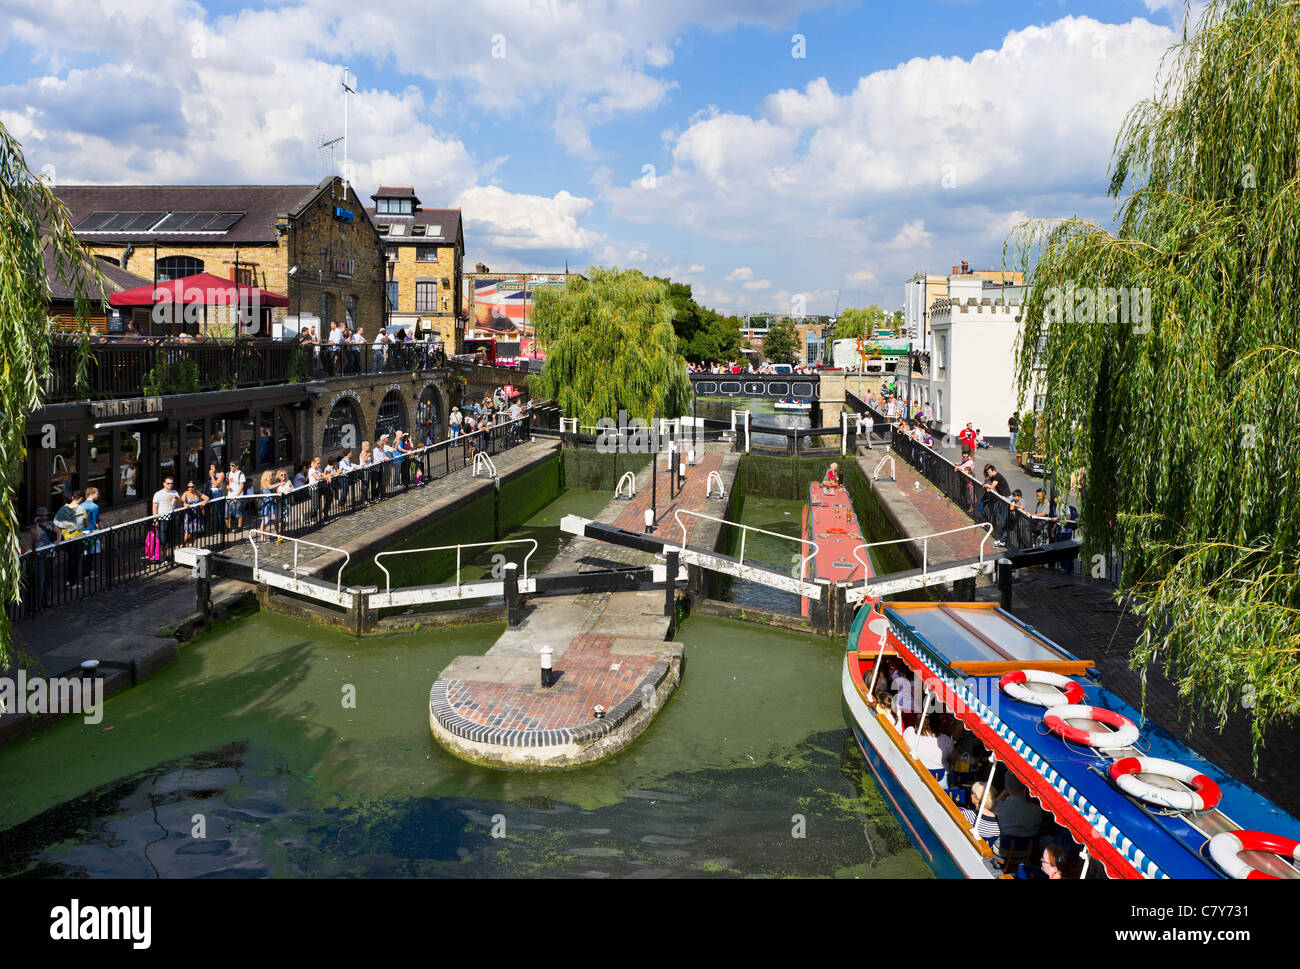 Narrowboat tour at Camden Lock on the Regent's Canal, North London, England, UK - Stock Image